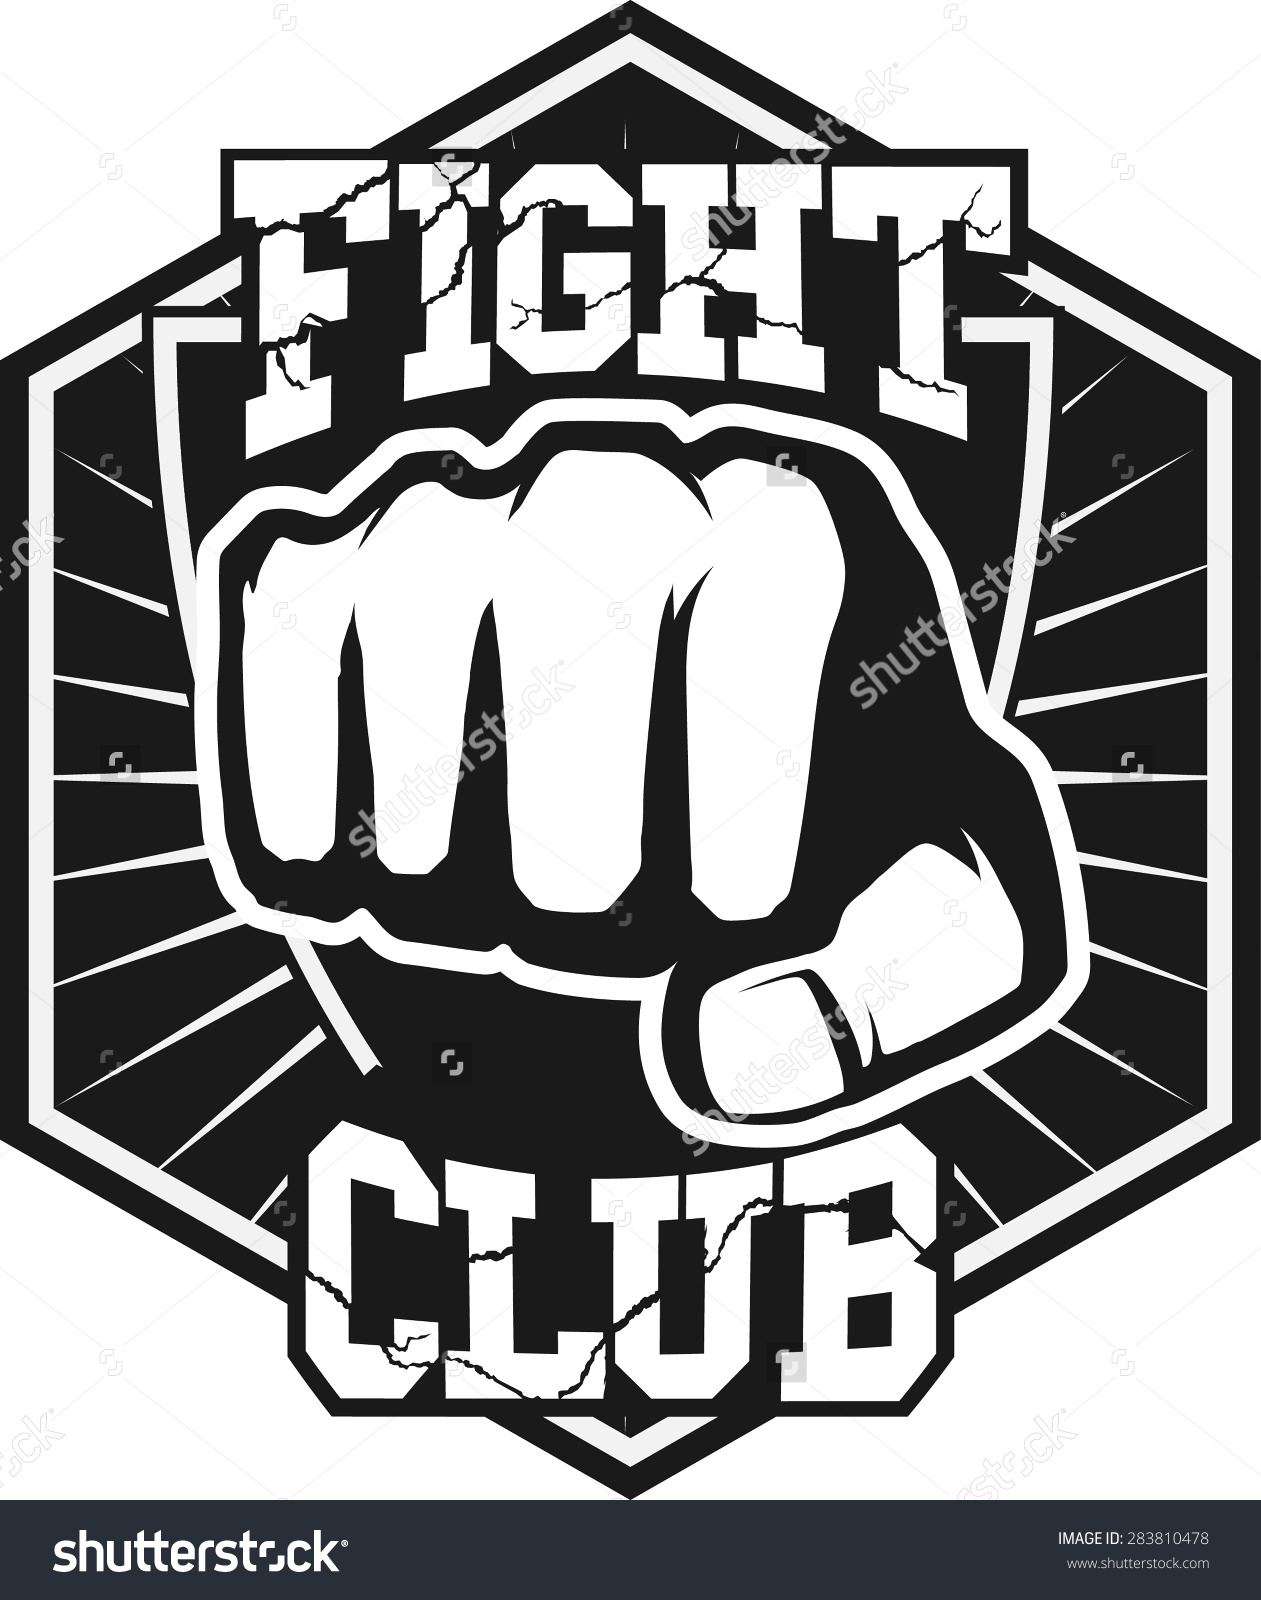 1261x1600 Fight Club Mma Ufc Mixed Martial Arts Fighting Logo Stamp